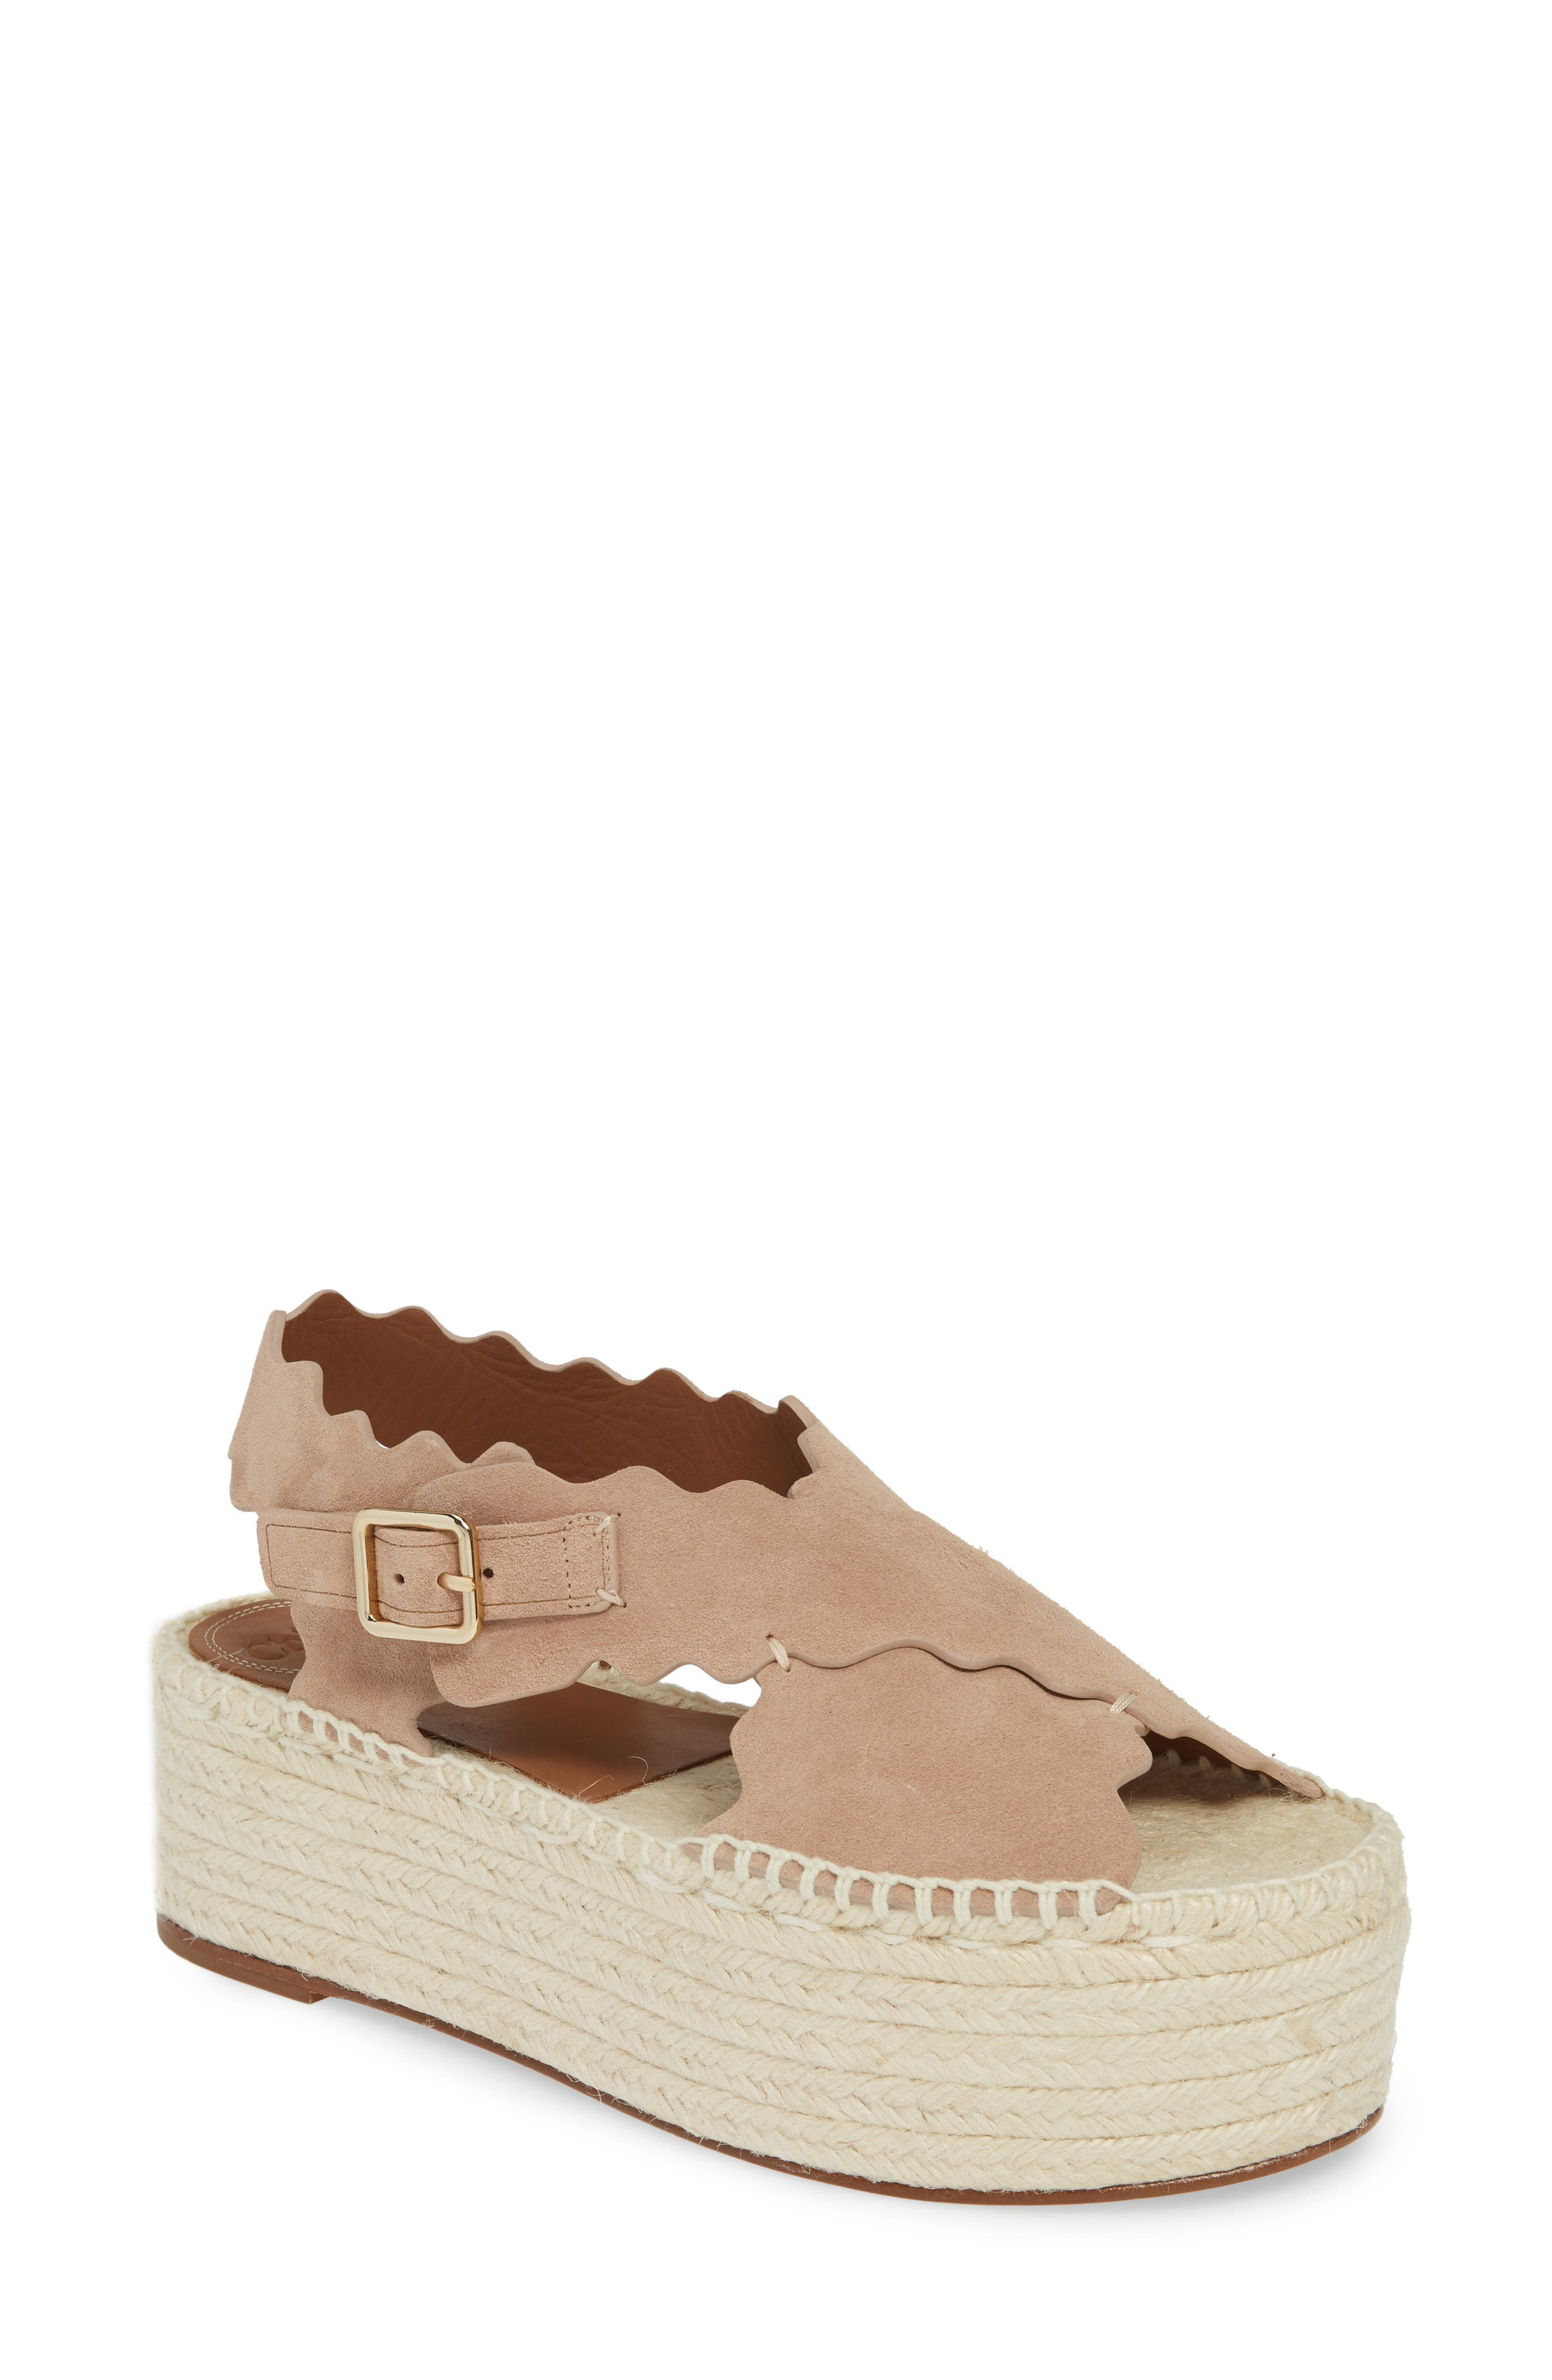 Chloé Lauren Scalloped Flatform Sandal (Women)